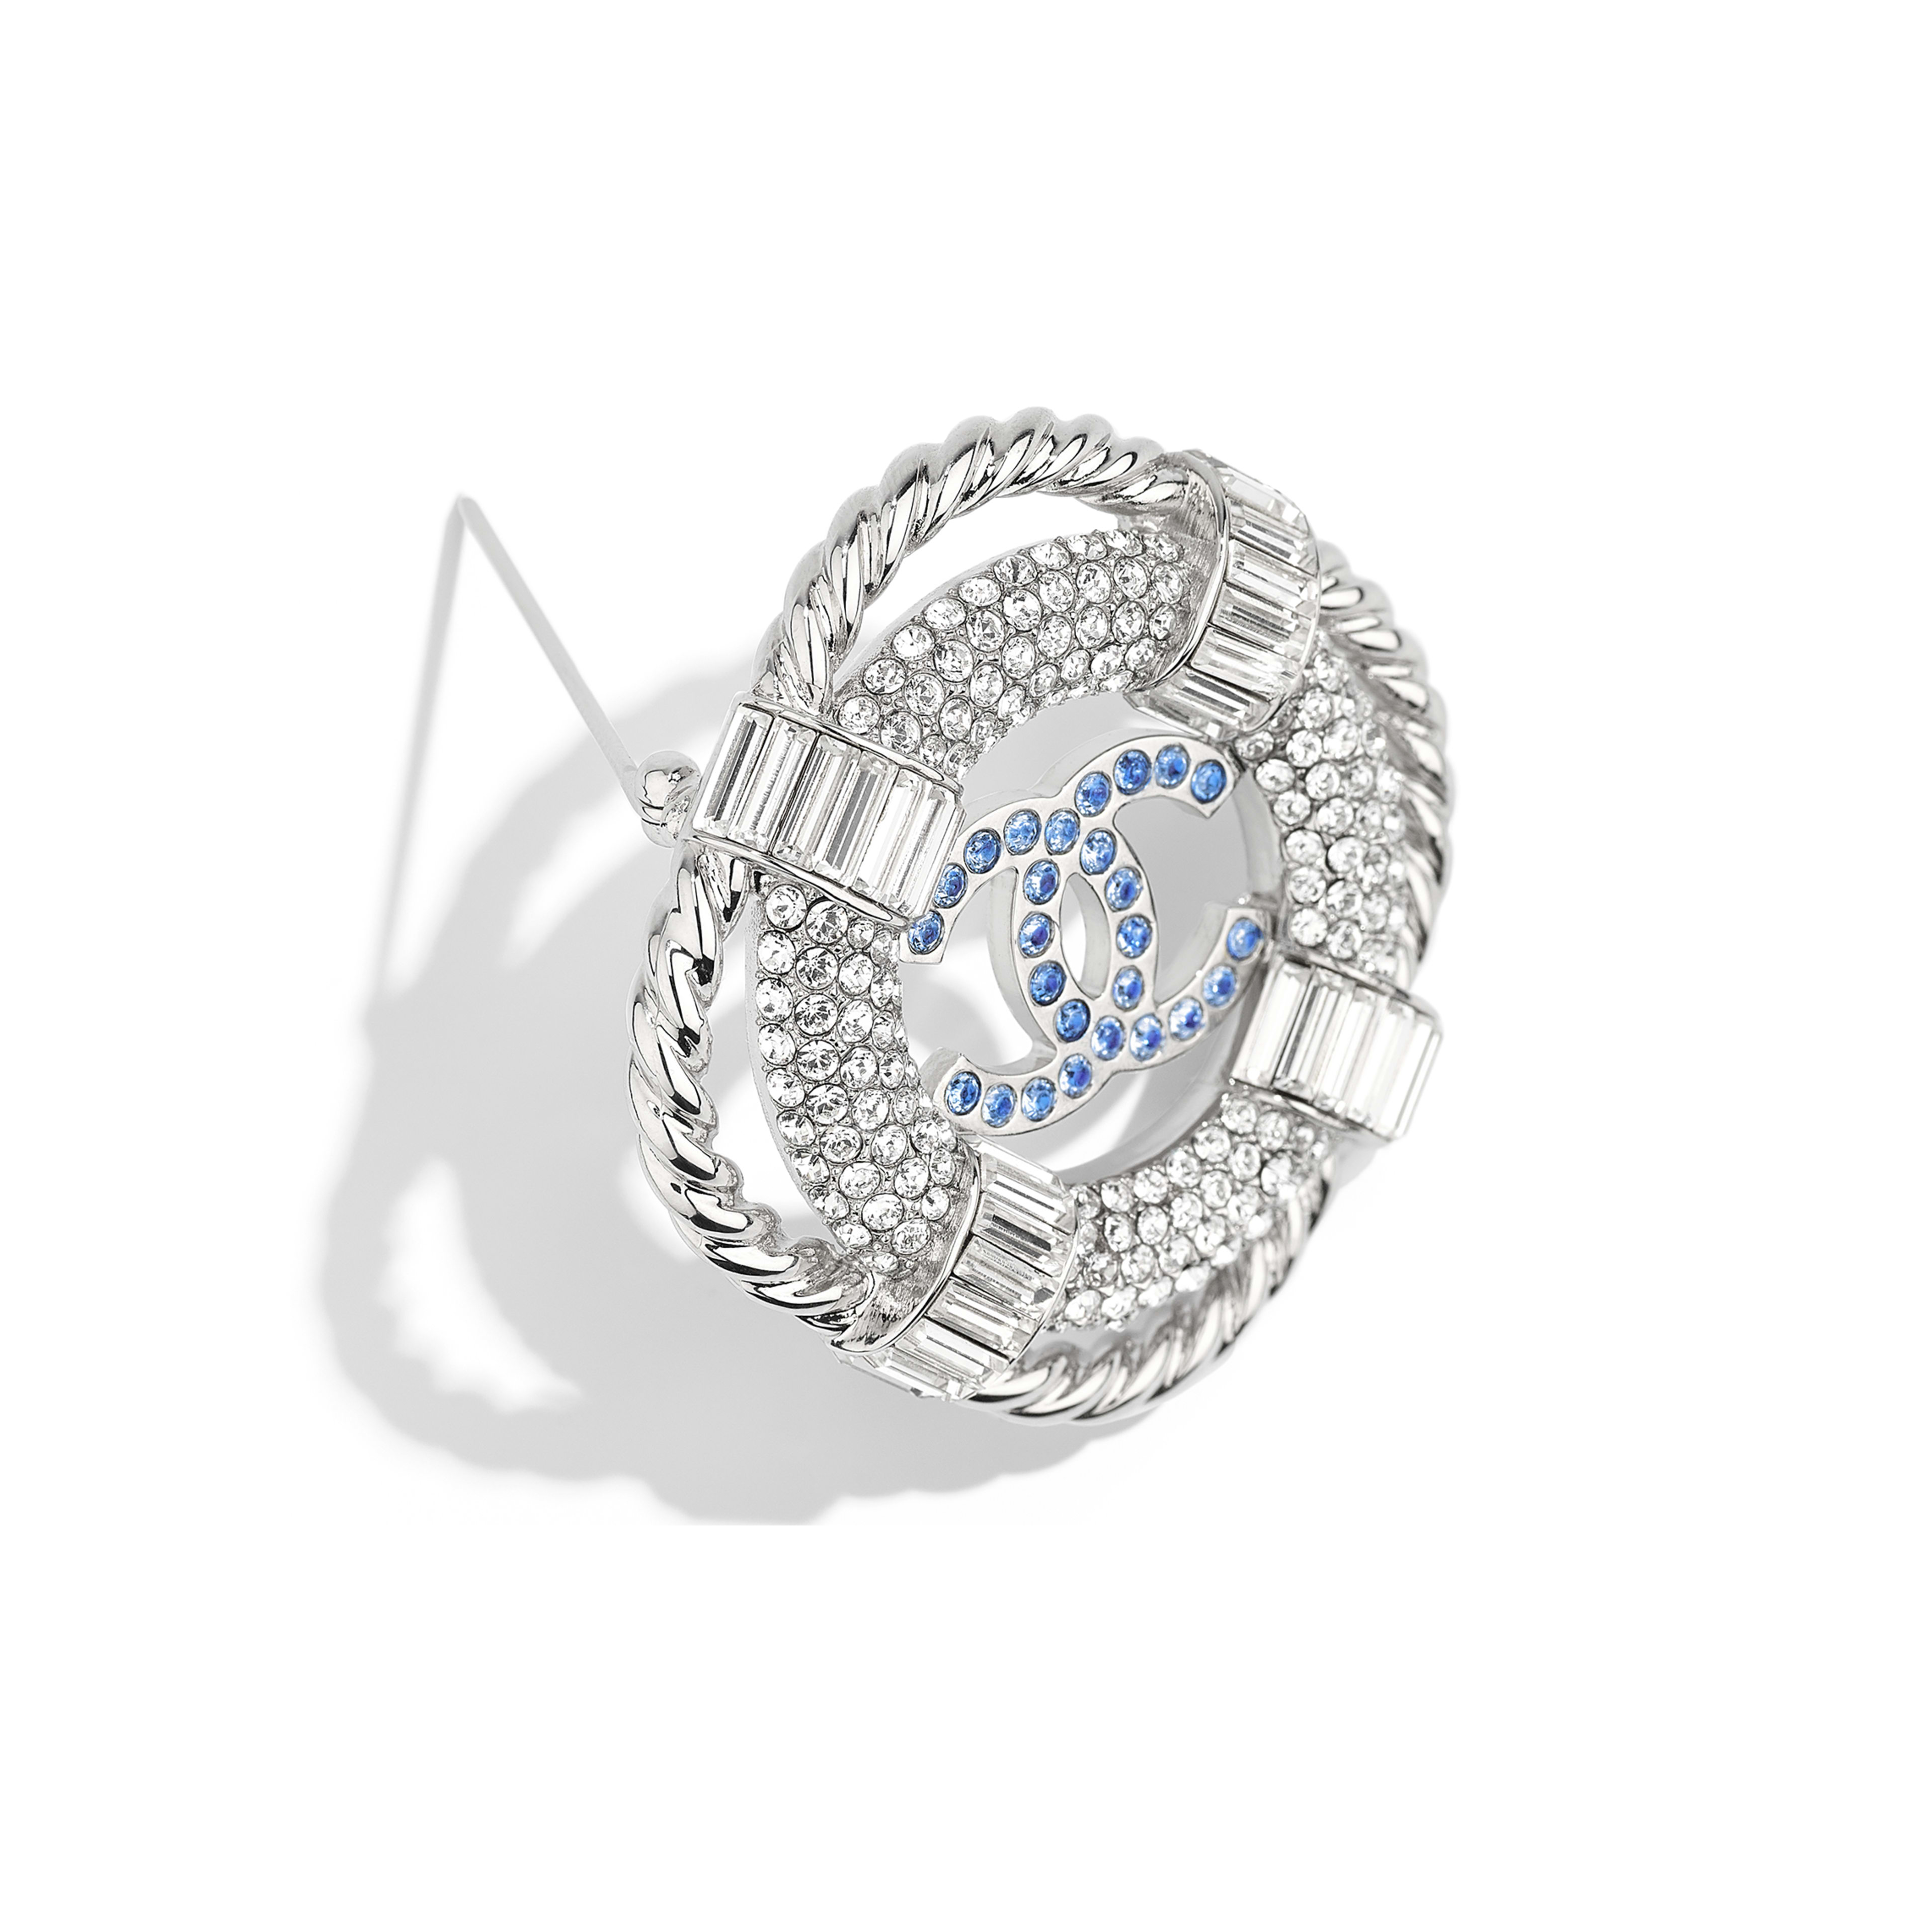 Brooch - Silver, Crystal & Blue - Metal & Strass - Alternative view - see full sized version